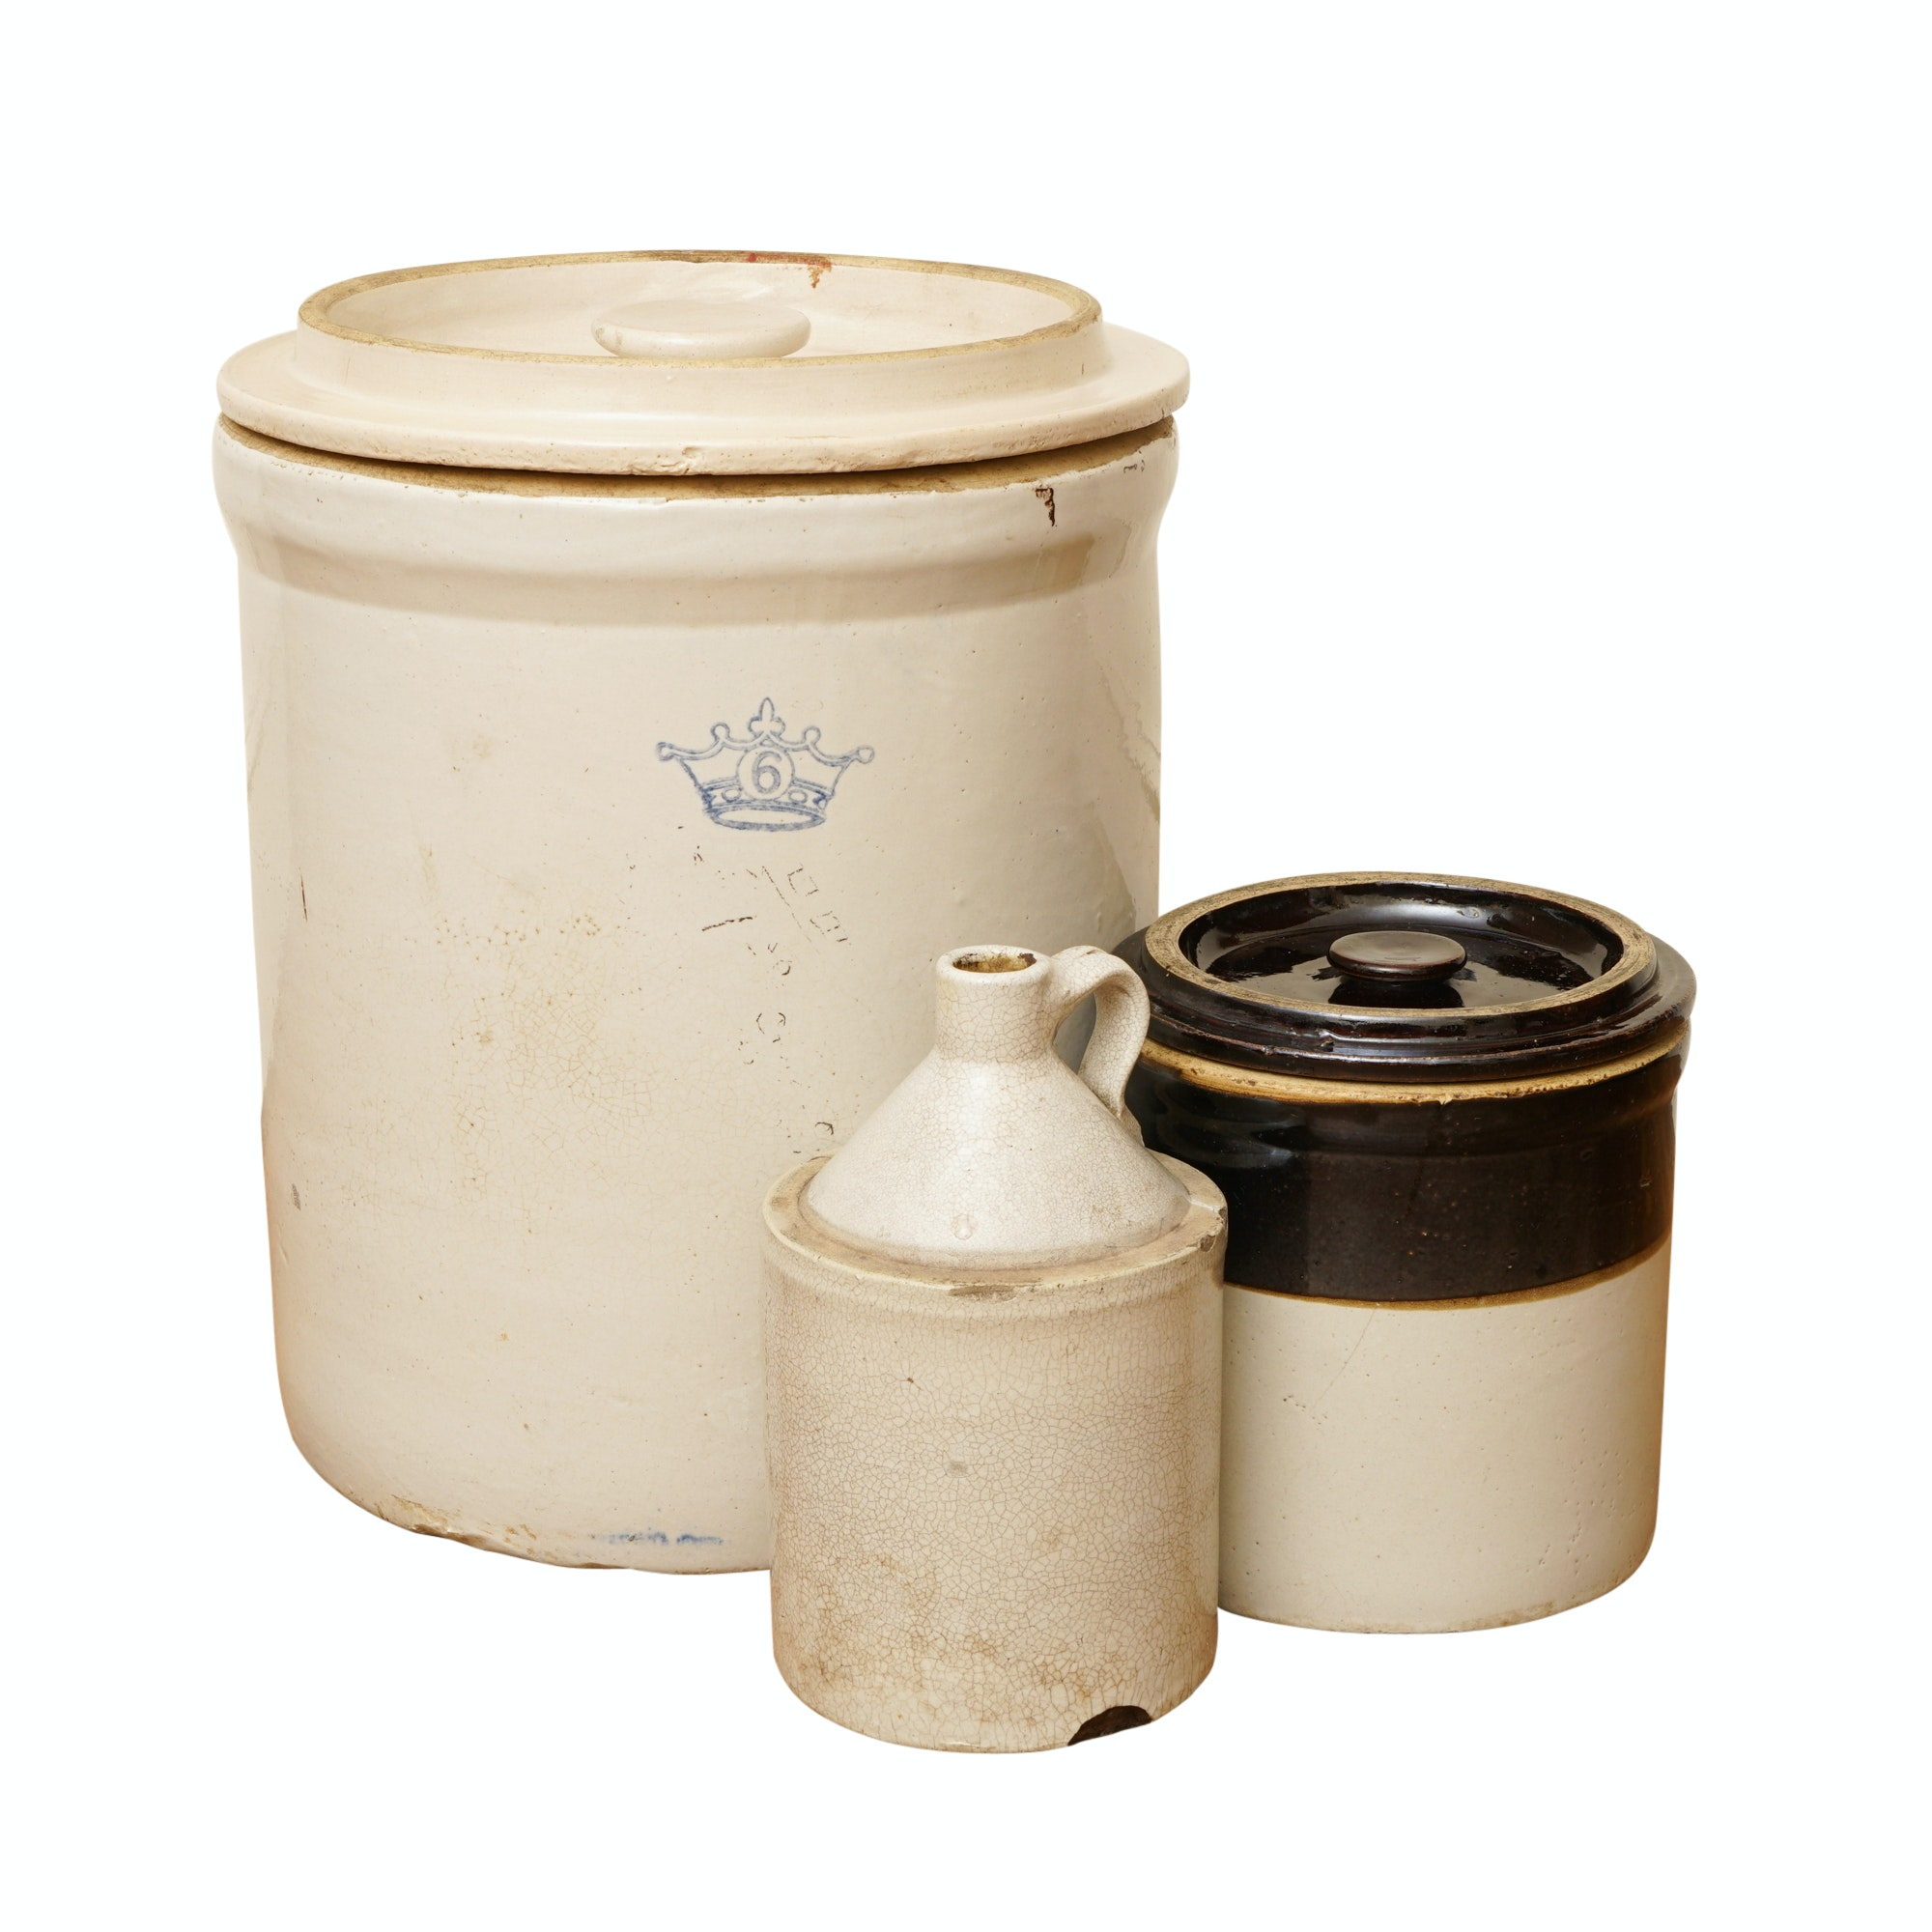 Vintage Stoneware Crocks and Jug featuring Robinson Ransbottom